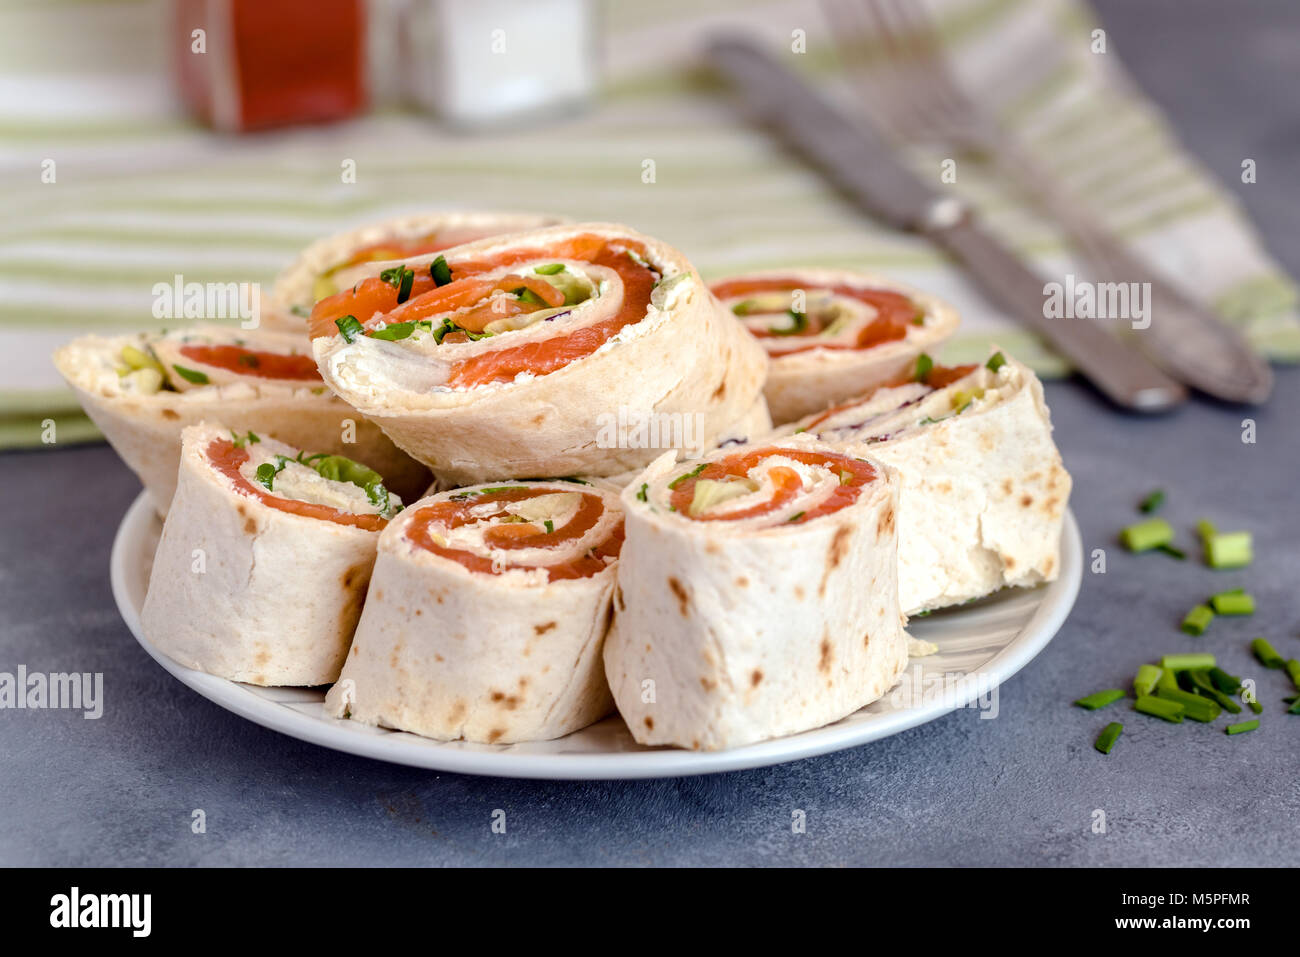 Rolls of thin pancakes with smoked salmon, cream cheese, chives and lettuce. - Stock Image